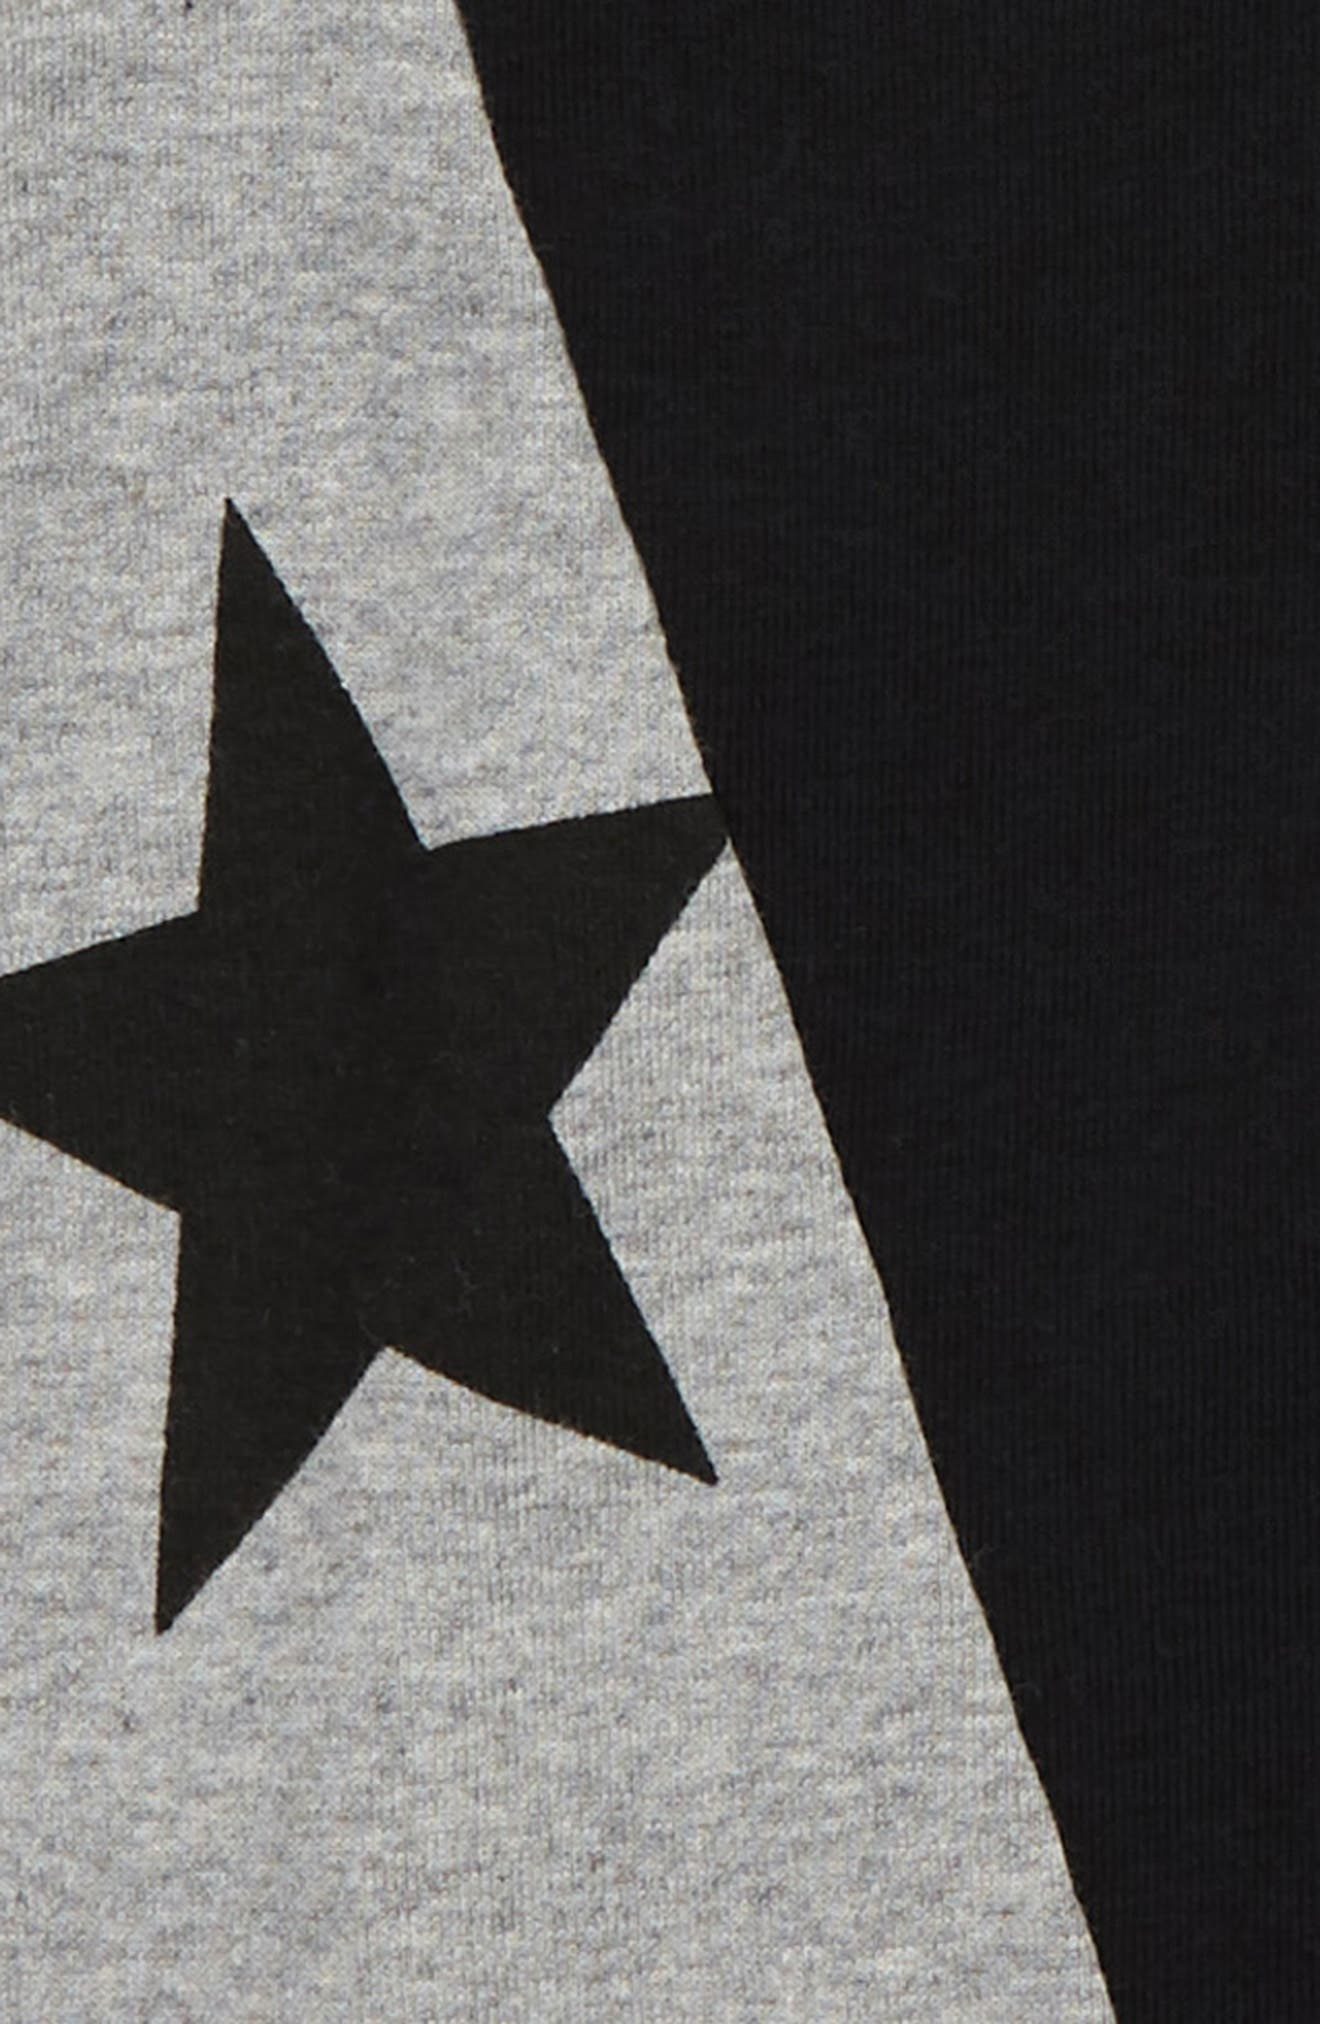 1/2 and 1/2 Star Romper,                             Alternate thumbnail 2, color,                             BLACK/ HEATHER GREY